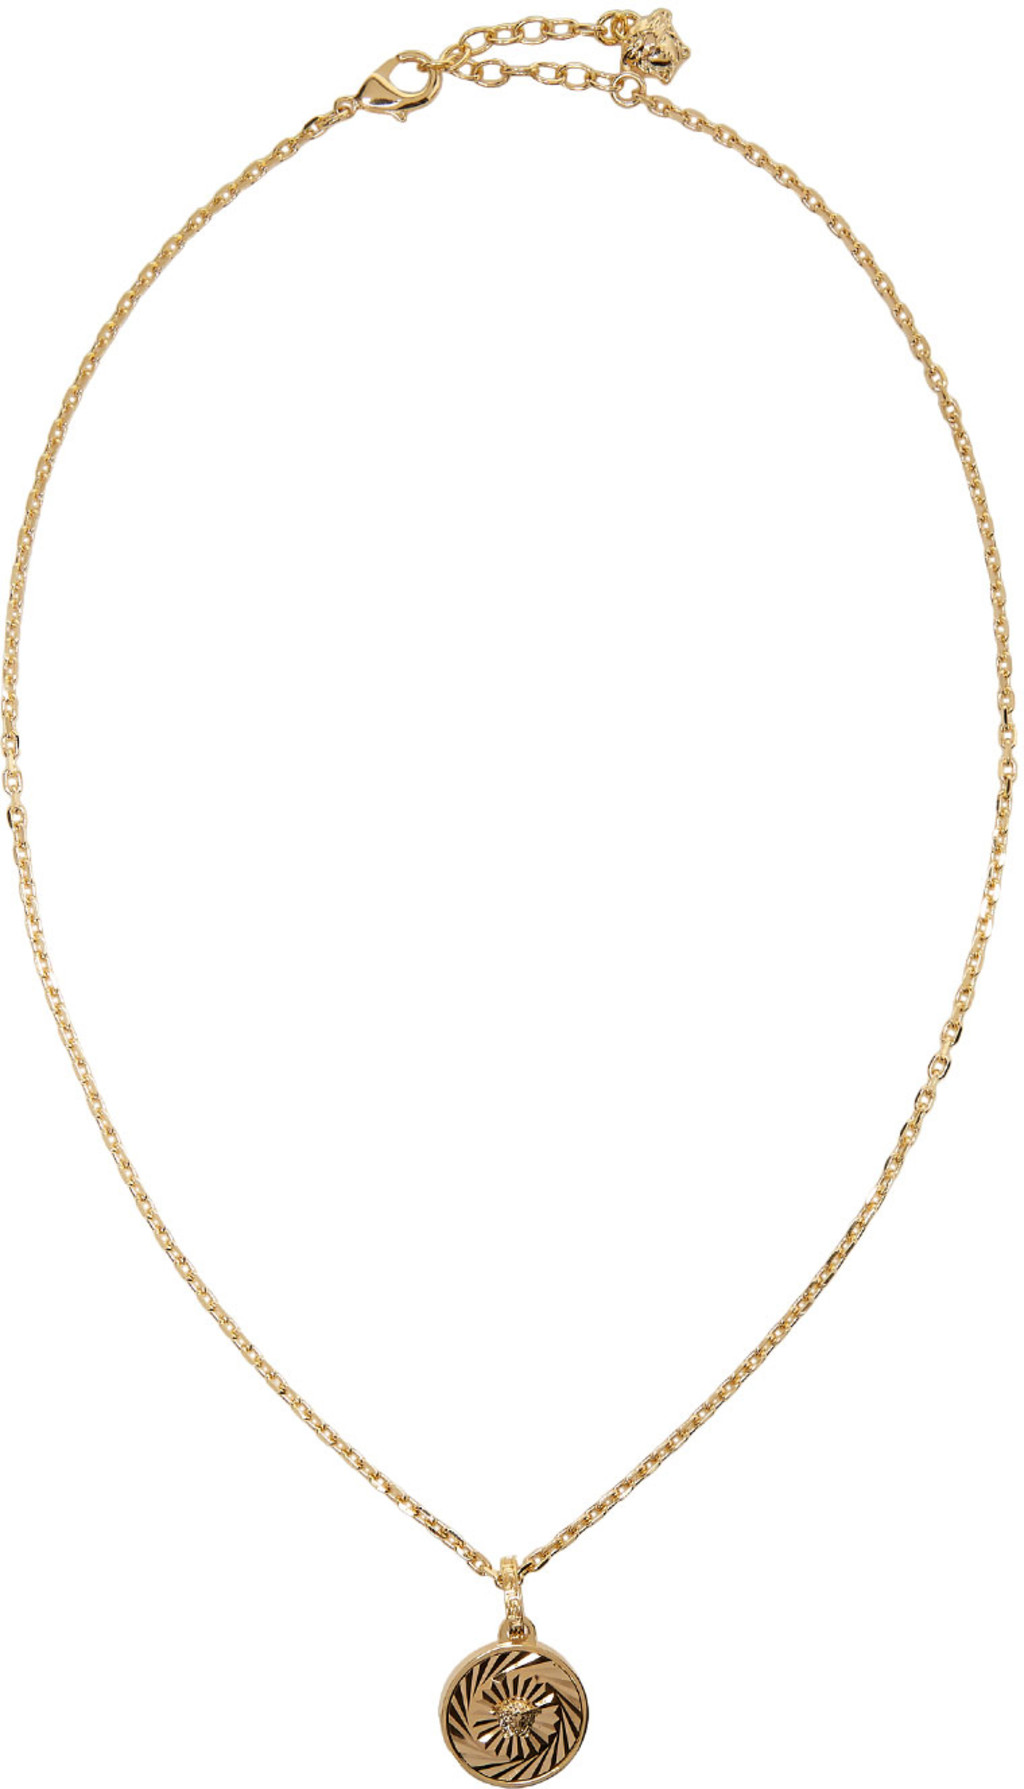 p apc tone mael bien gold necklace a c tr s